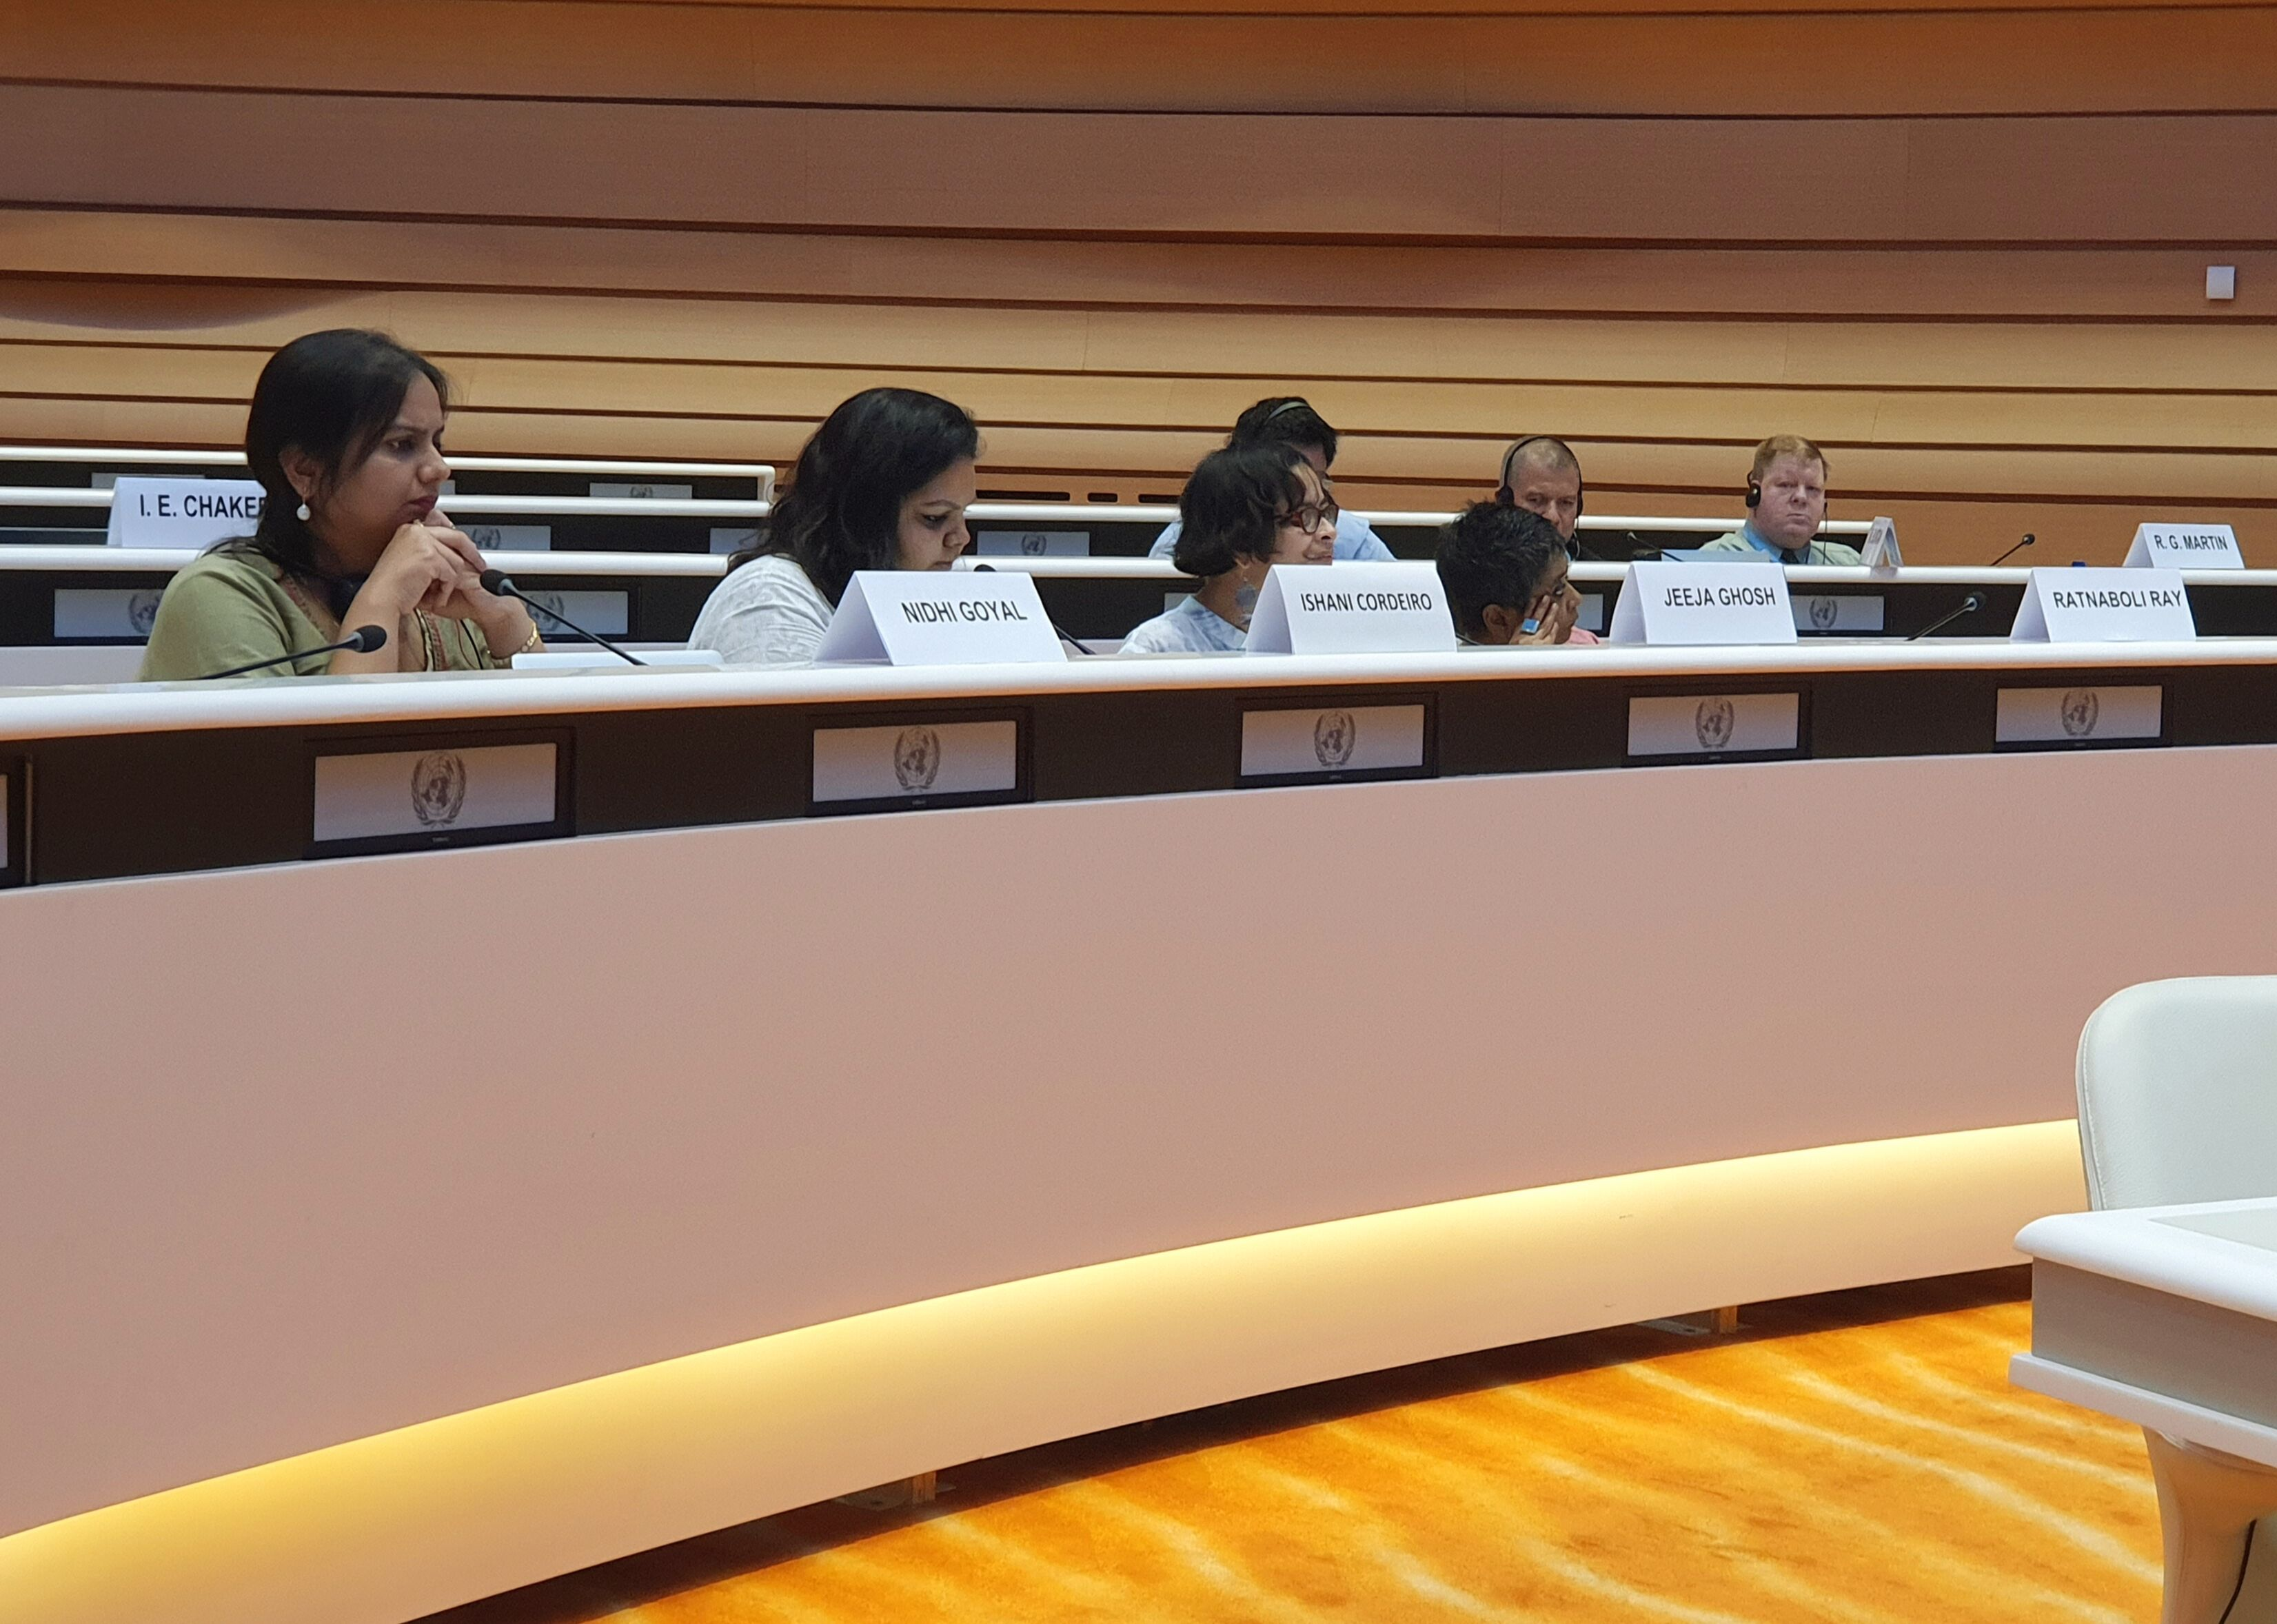 nidhi goyal, ishani cordero, jeeja ghosh and ratnaboli ray sit around a large table with their name tags in front of them at the UNCRPD reporting